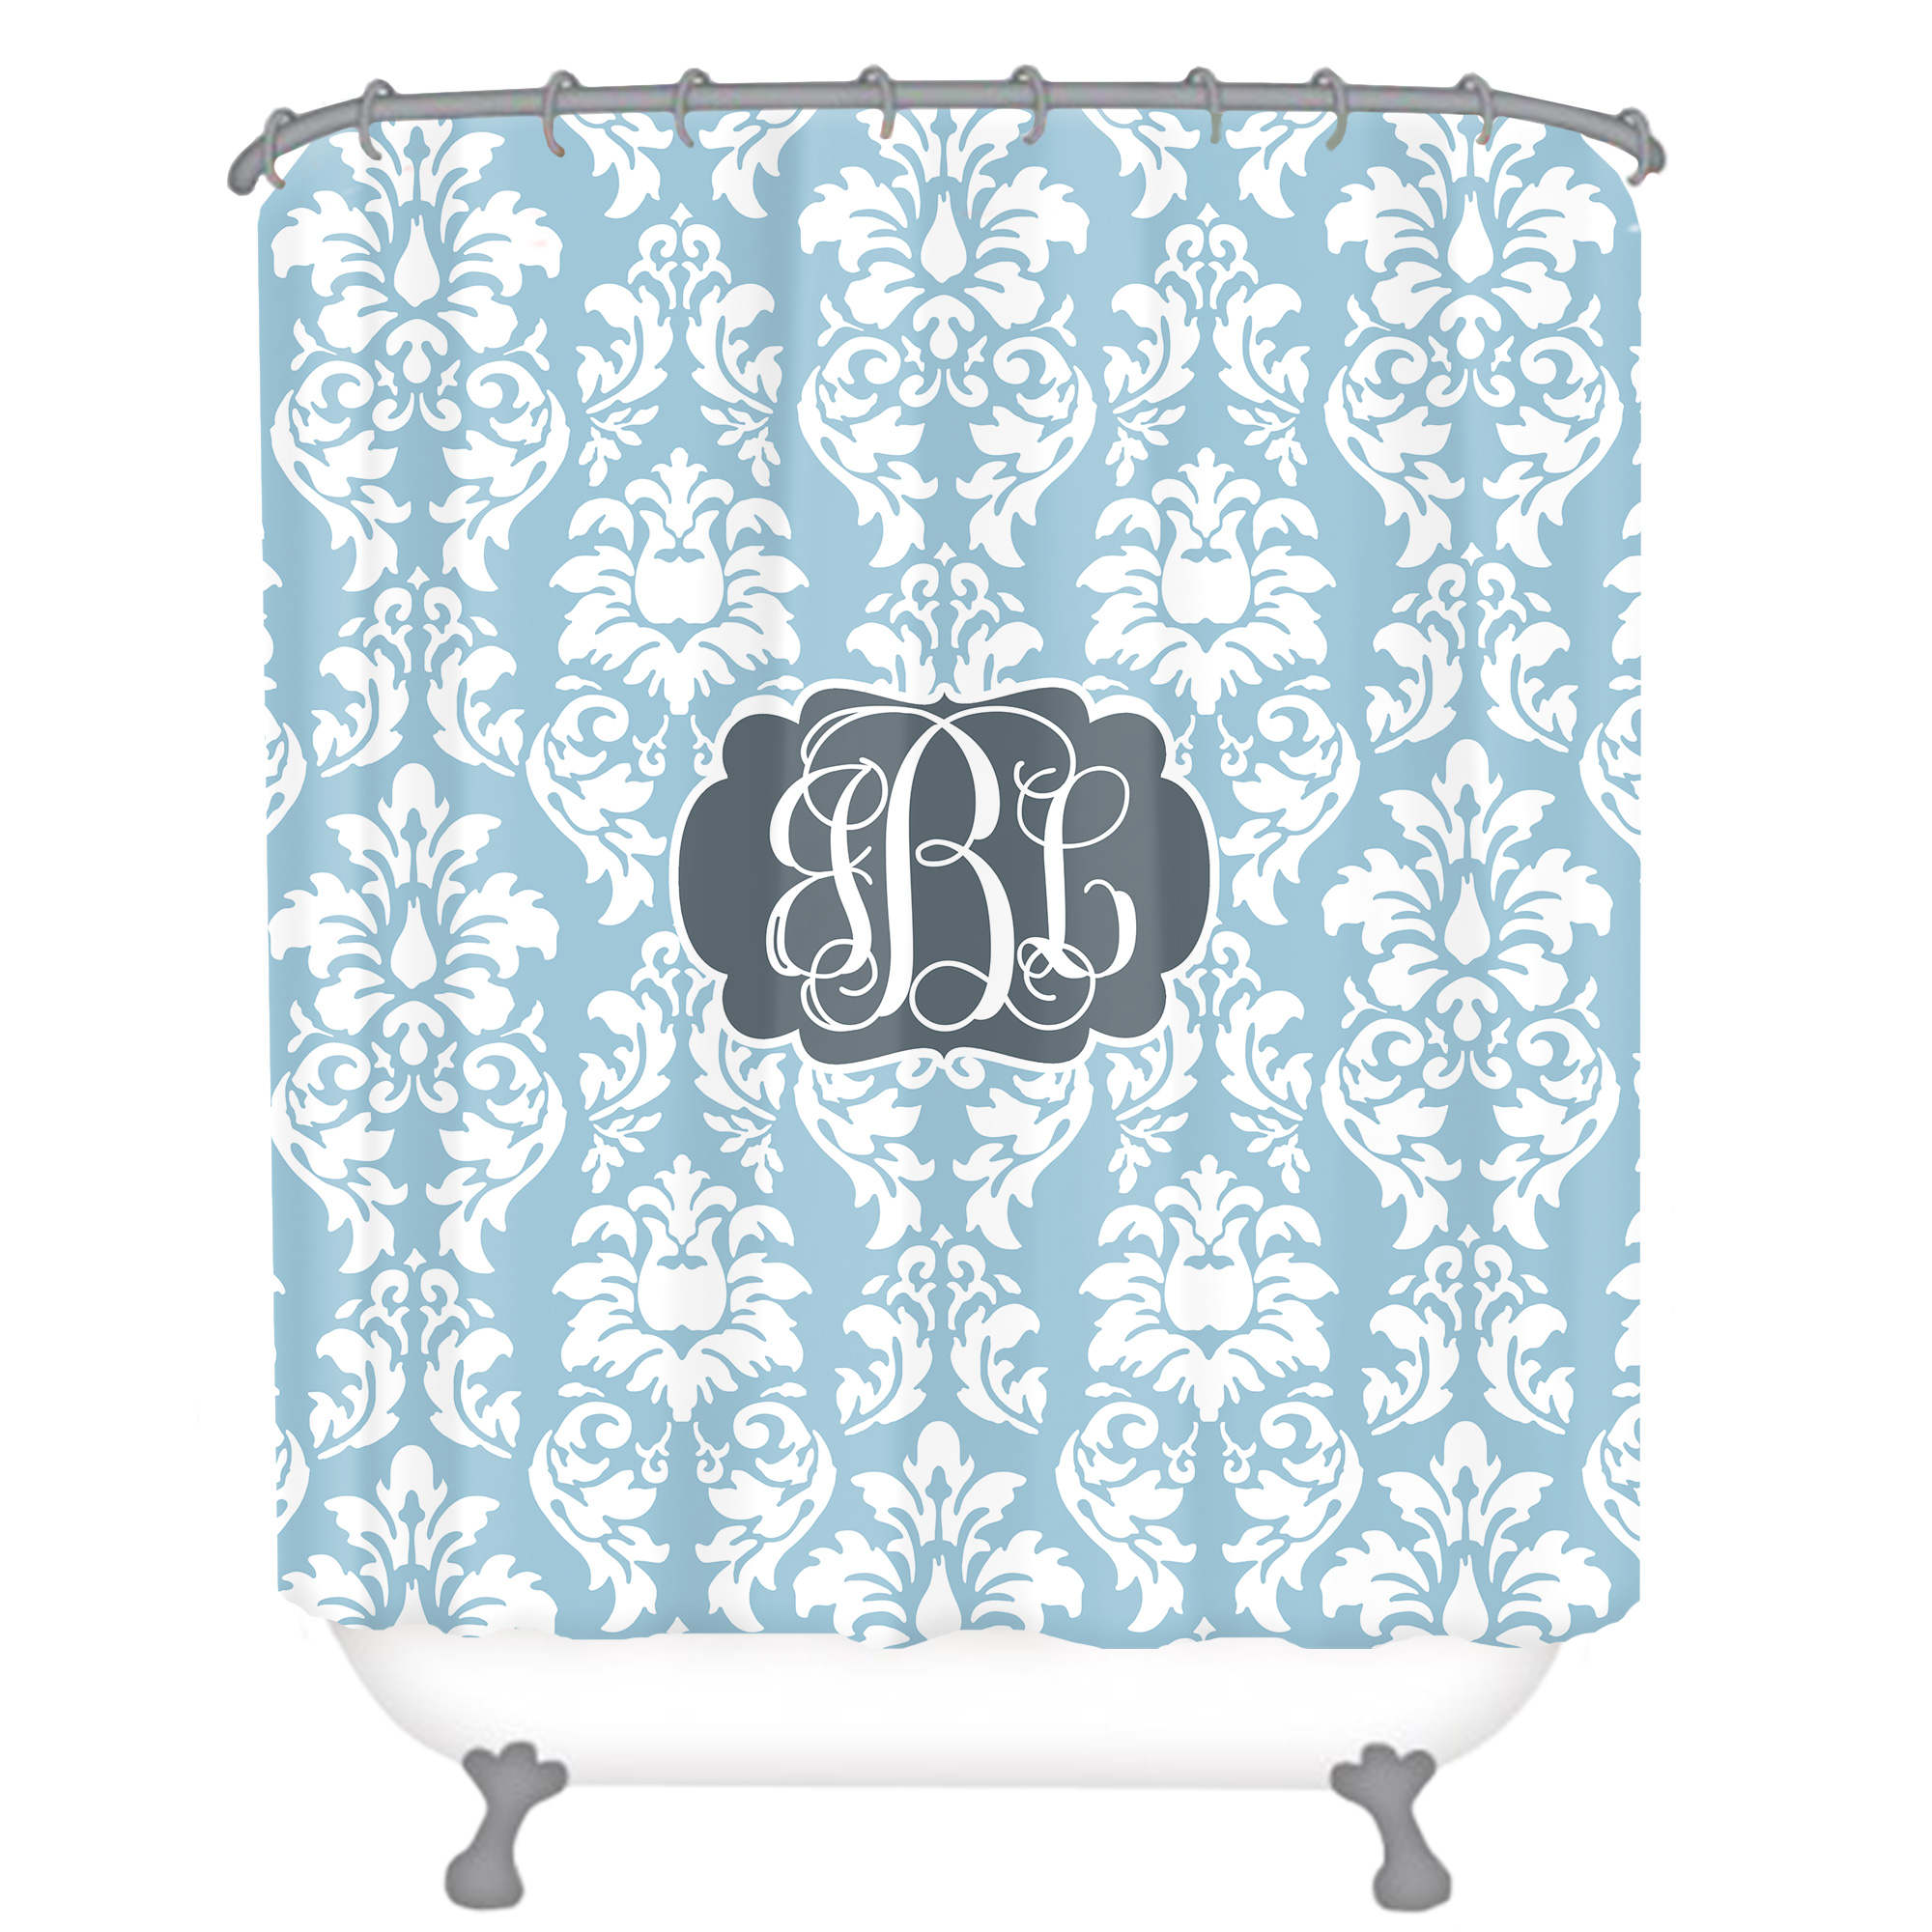 Personalized Shower Curtain Monogrammed Shower Curtain Custom Shower Curtain Decorative